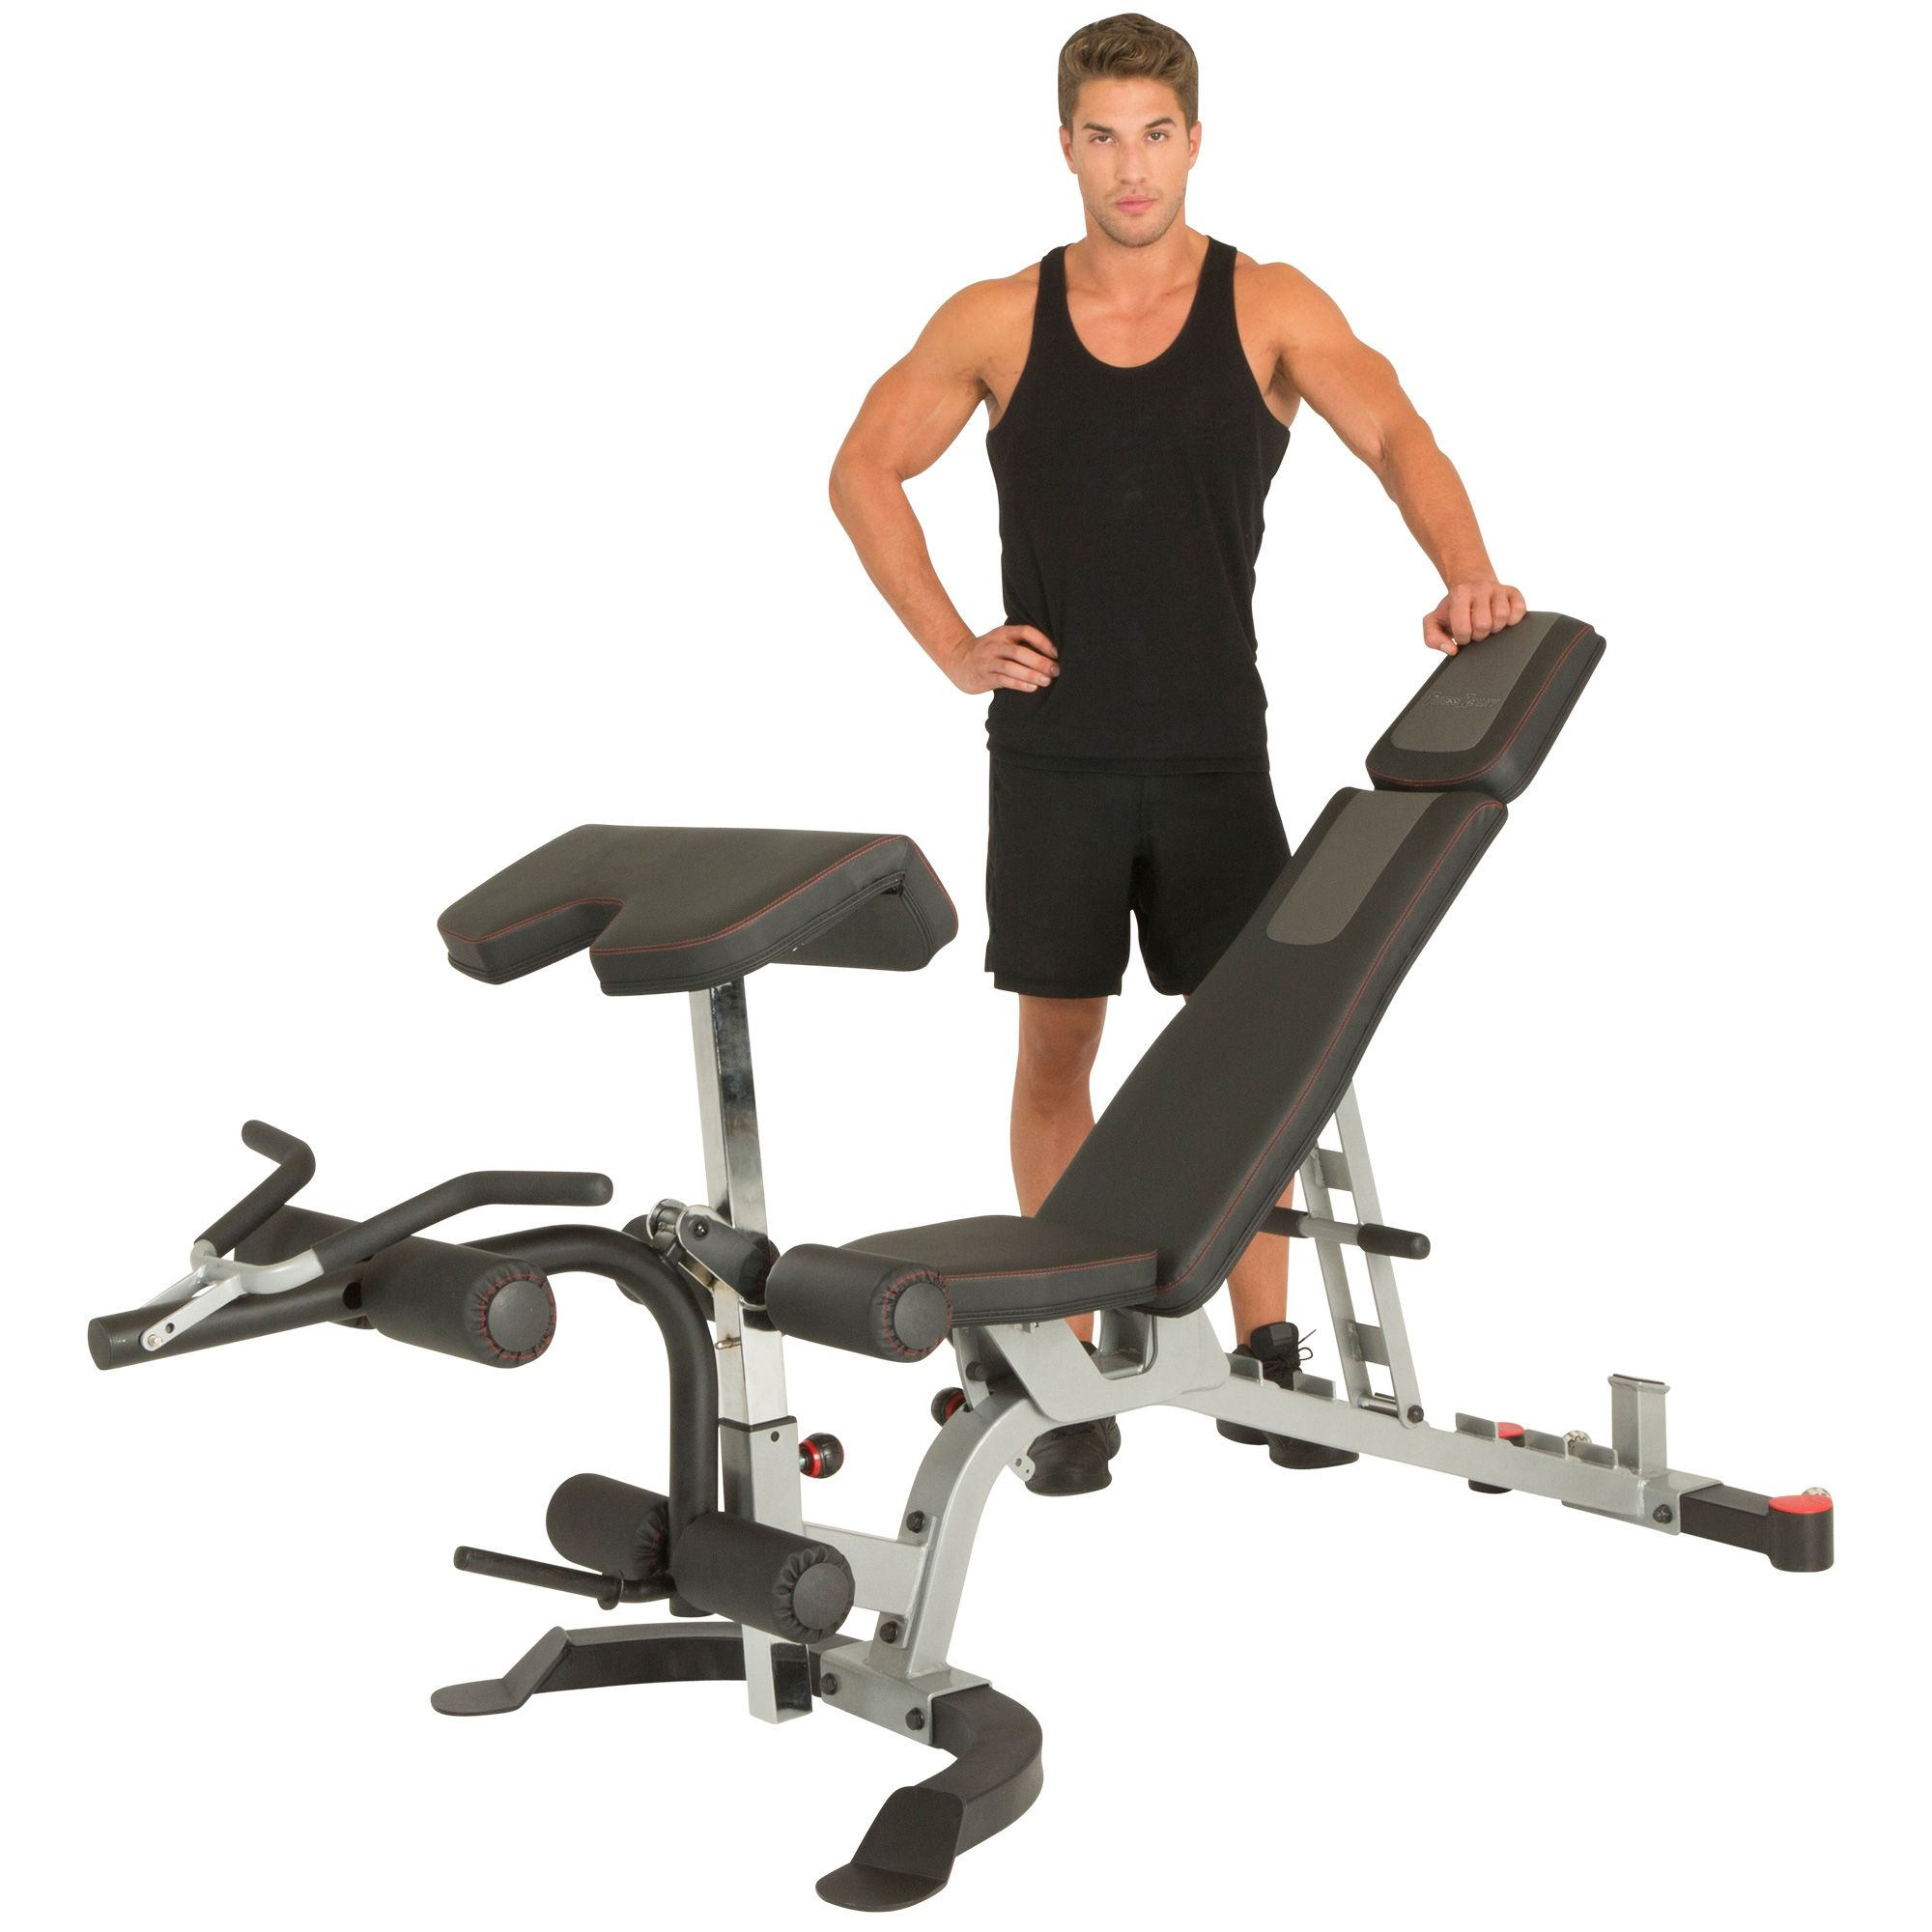 Fitness Reality X Class 1500 Lb Light Commercial Utility Weight Bench With Olympic Preacher Curl And Leg Developer Attachment Steel Verpackung